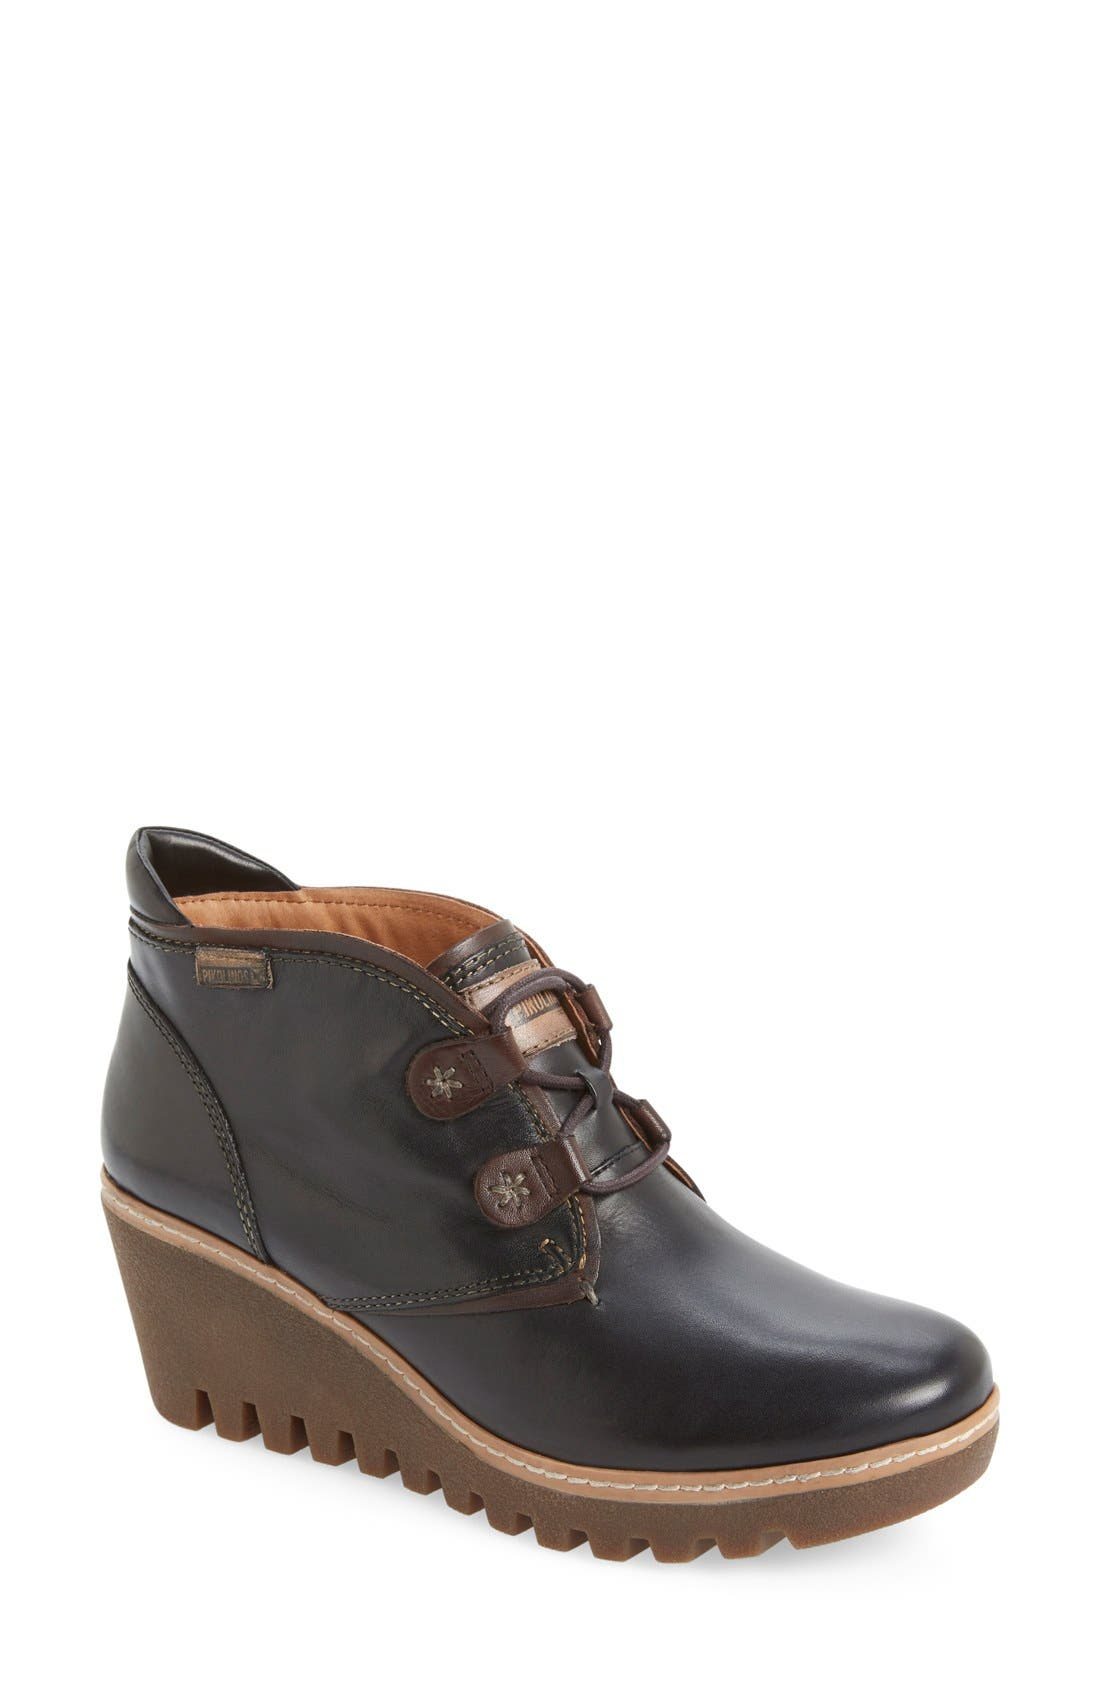 'Maple' Wedge Bootie,                         Main,                         color, 001